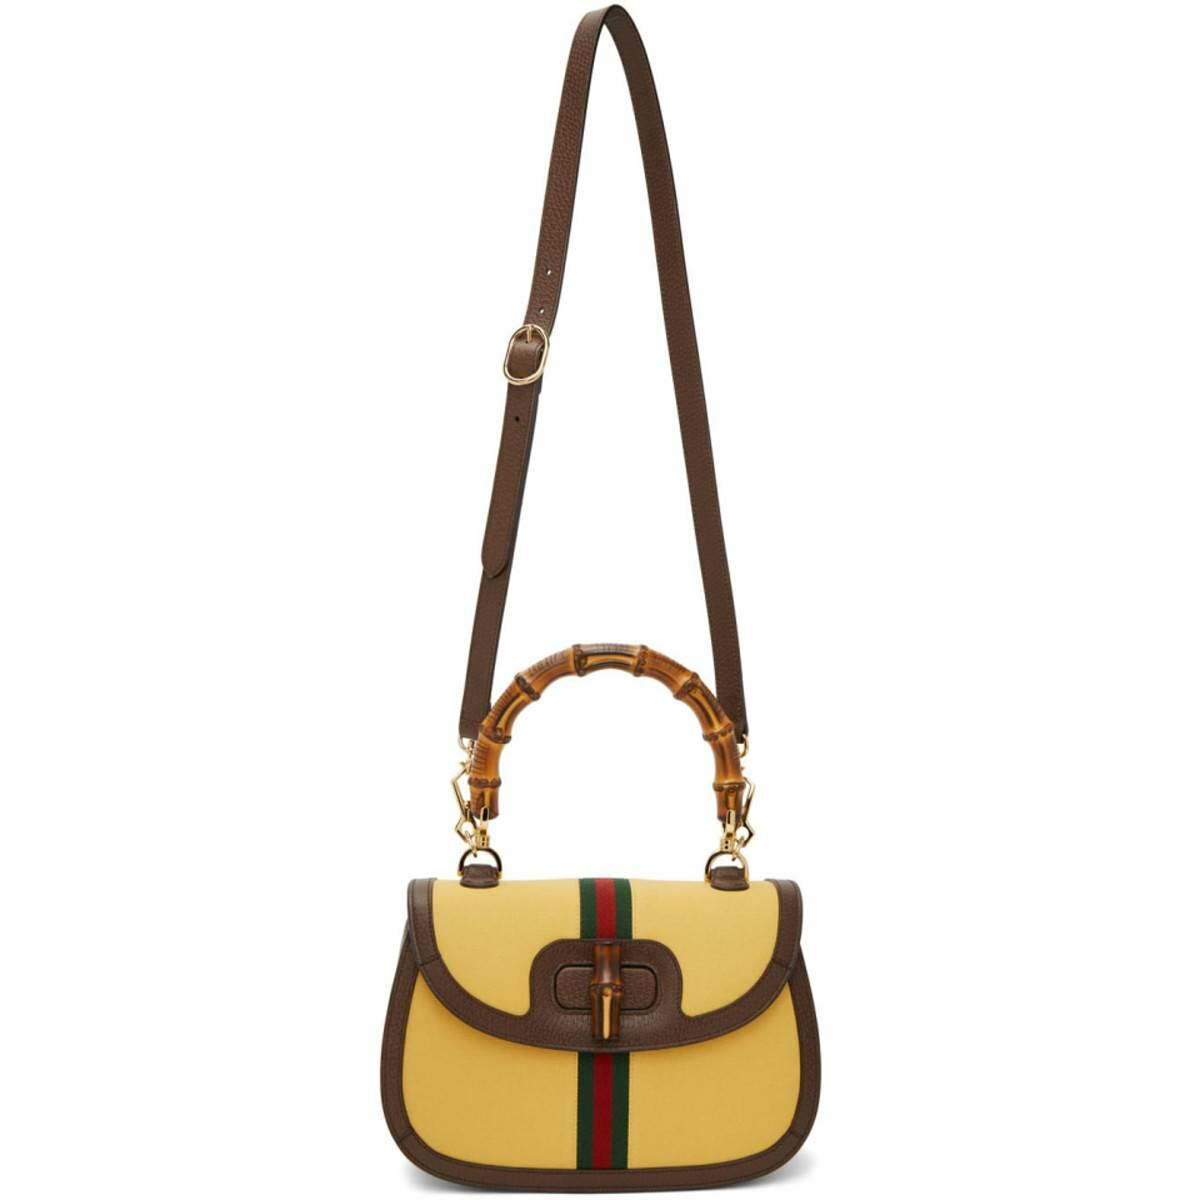 Gucci Yellow and Brown Bamboo Top Handle Bag Ssense USA WOMEN Women ACCESSORIES Womens BAGS